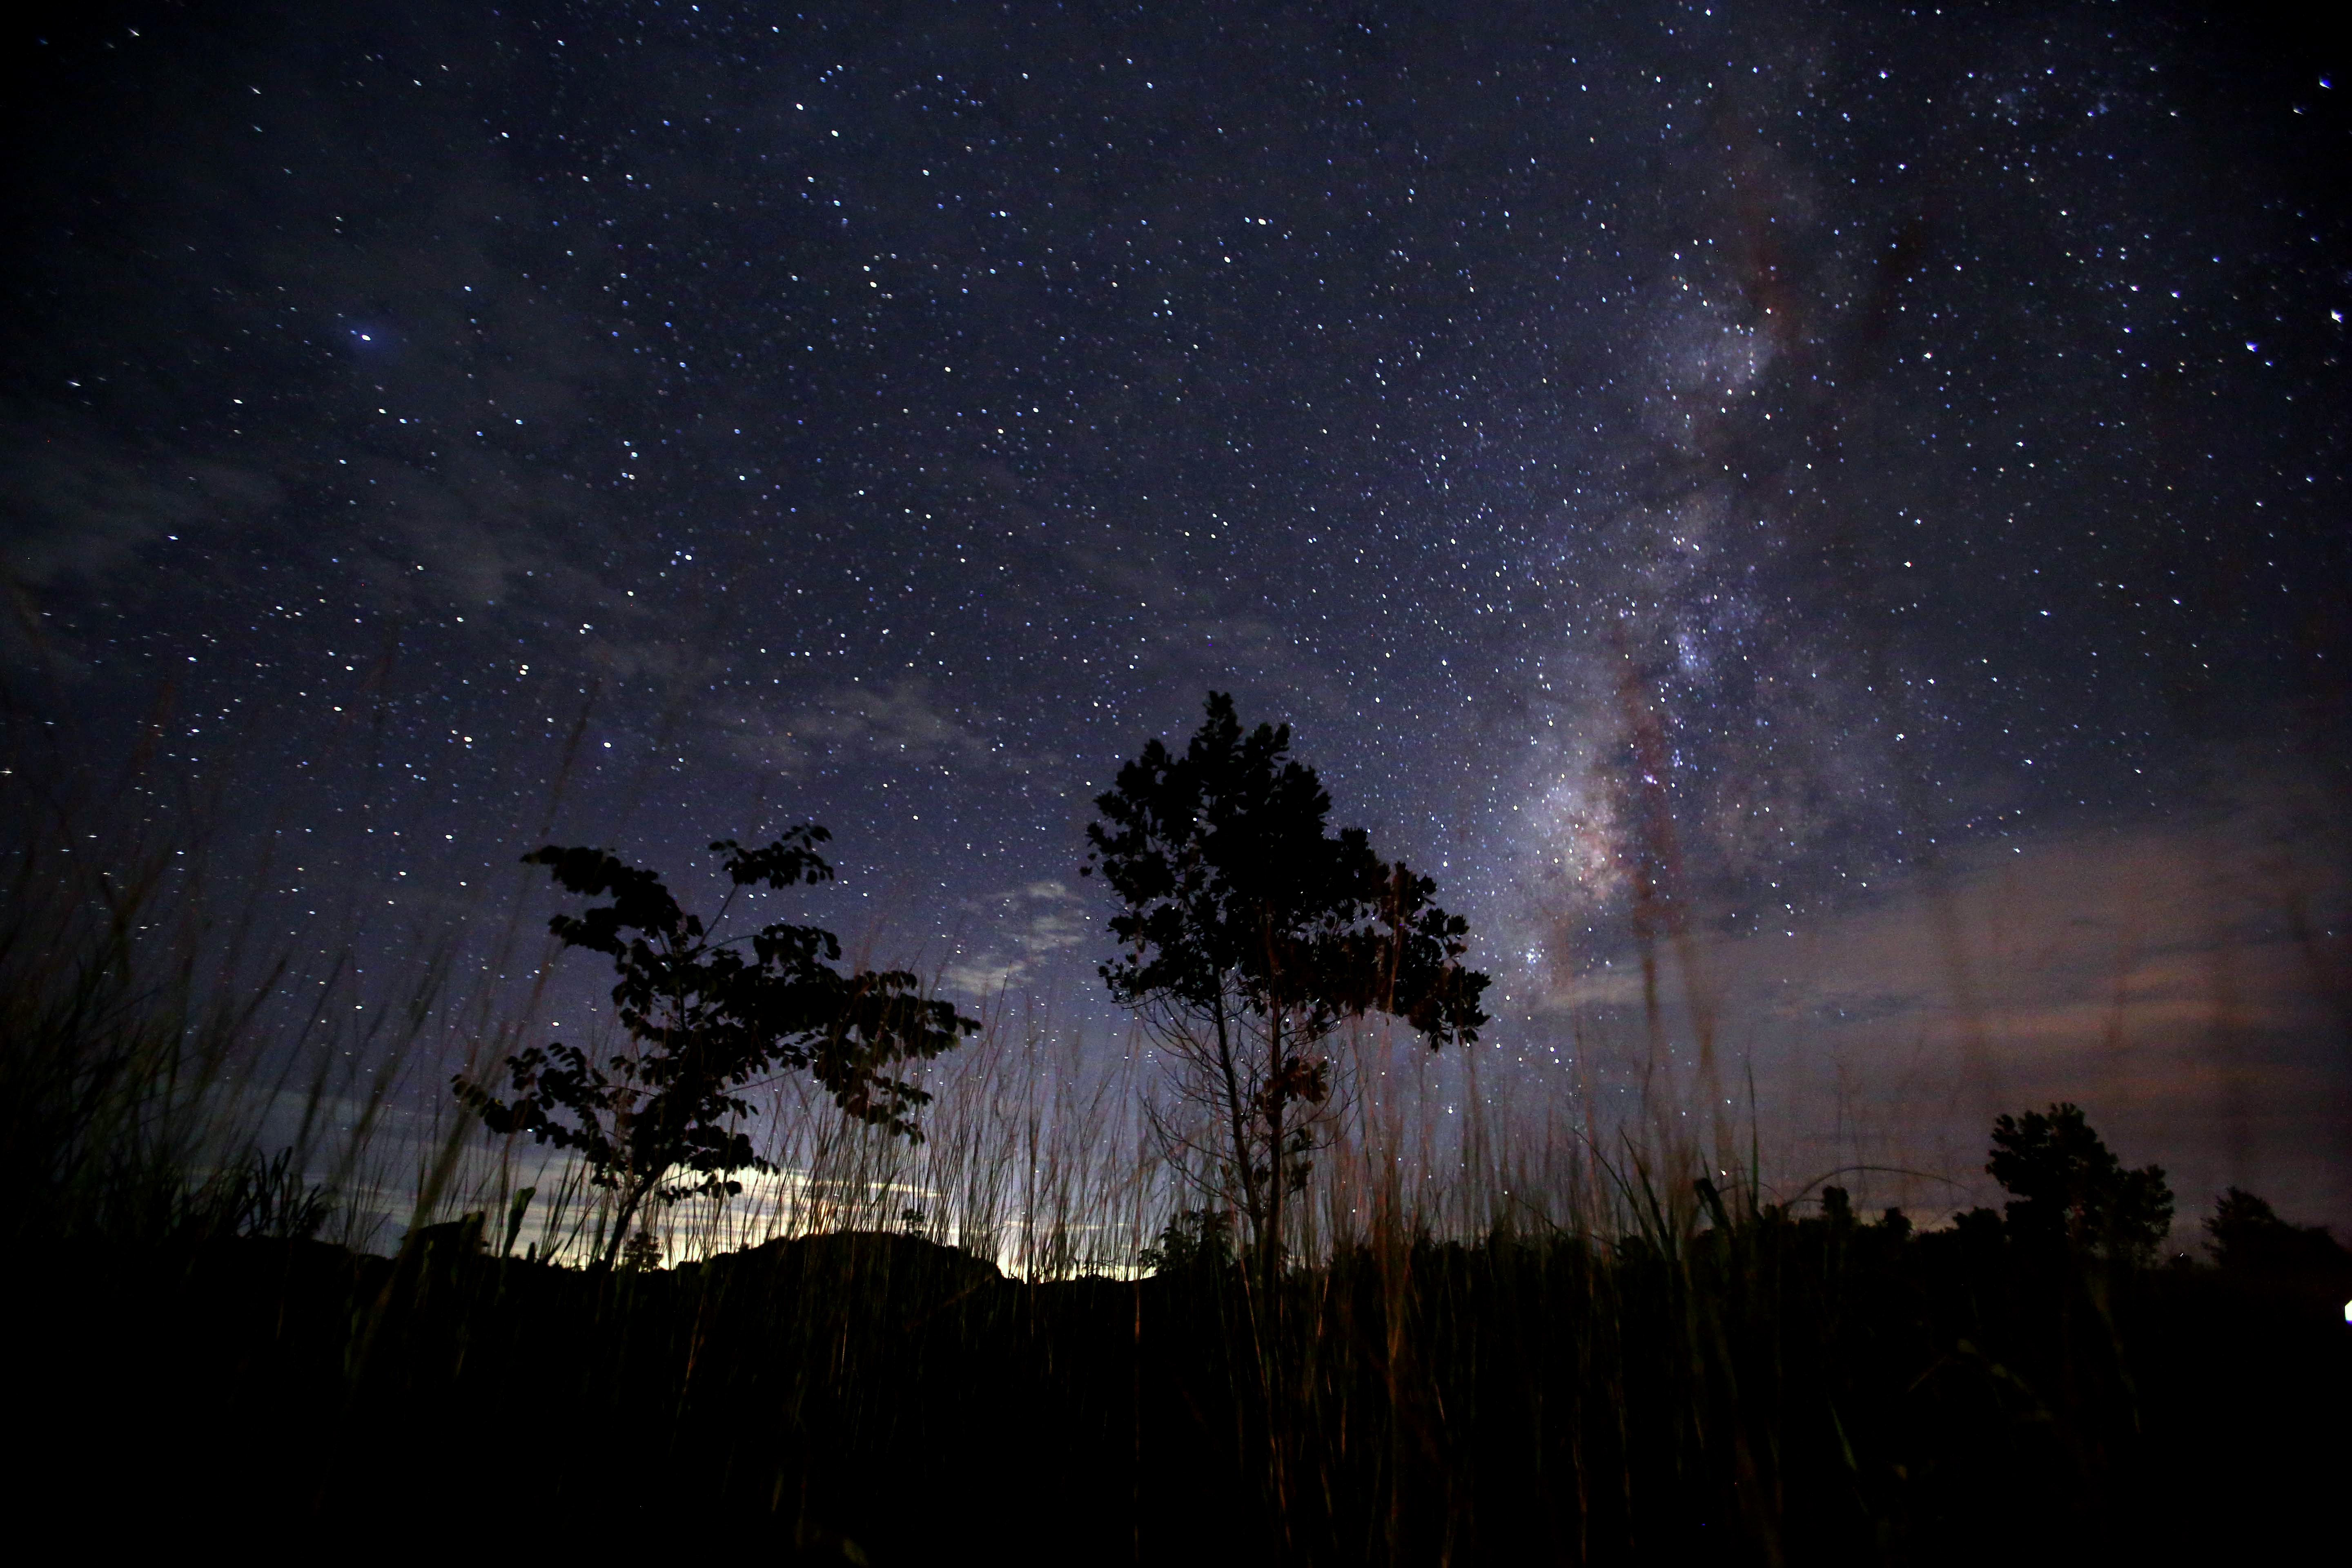 This long-exposure photograph of the Perseid meteor shower, taken on Aug. 12, 2013, shows the Milky Way in the clear night sky near Yangon, Burma. (Ye Aung Thu/AFP/Getty Images)